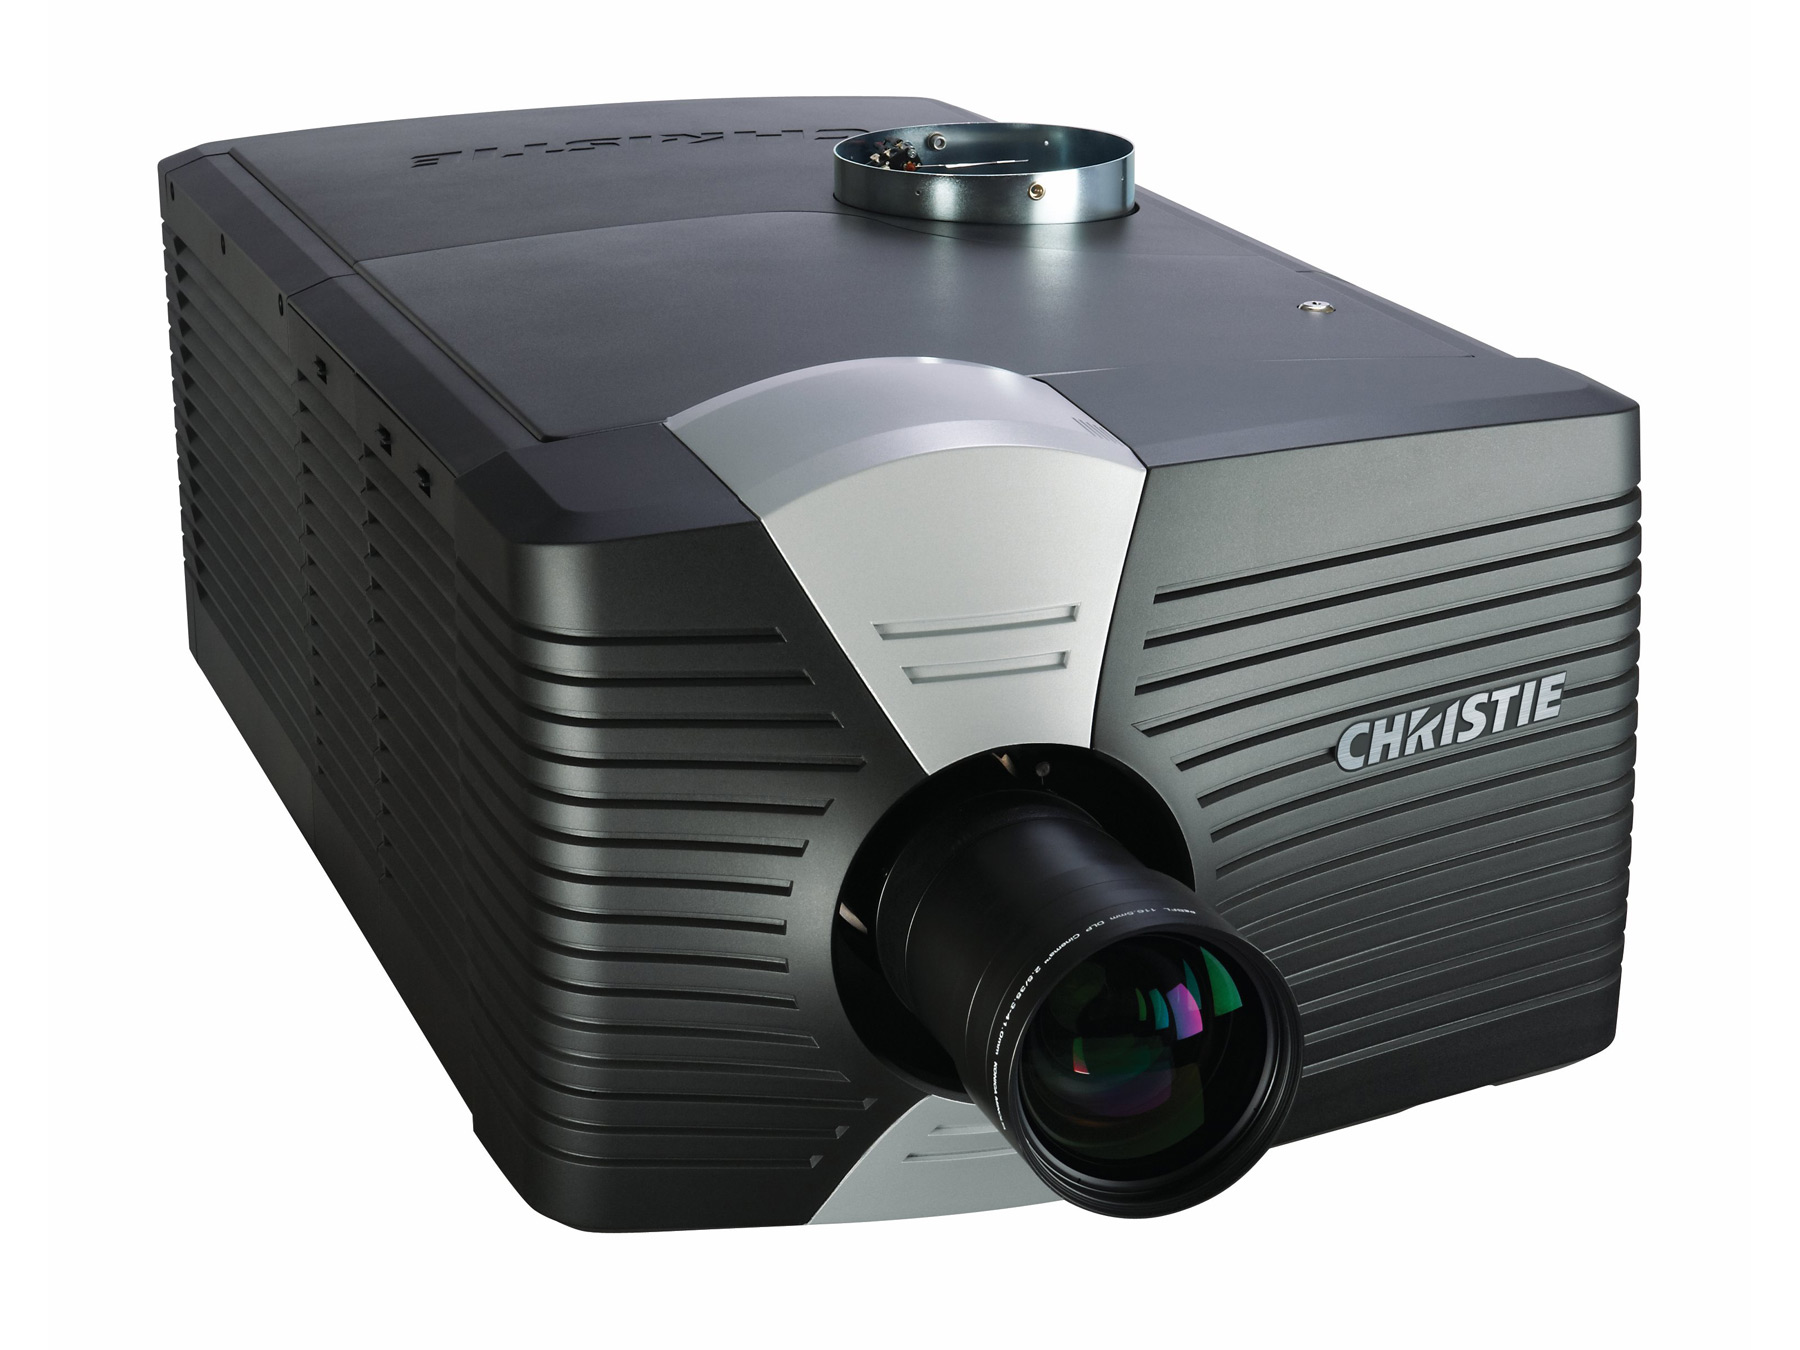 /globalassets/.catalog/products/images/christie-cp4220/gallery/digital-cinema-projector-4k-image-5.jpg